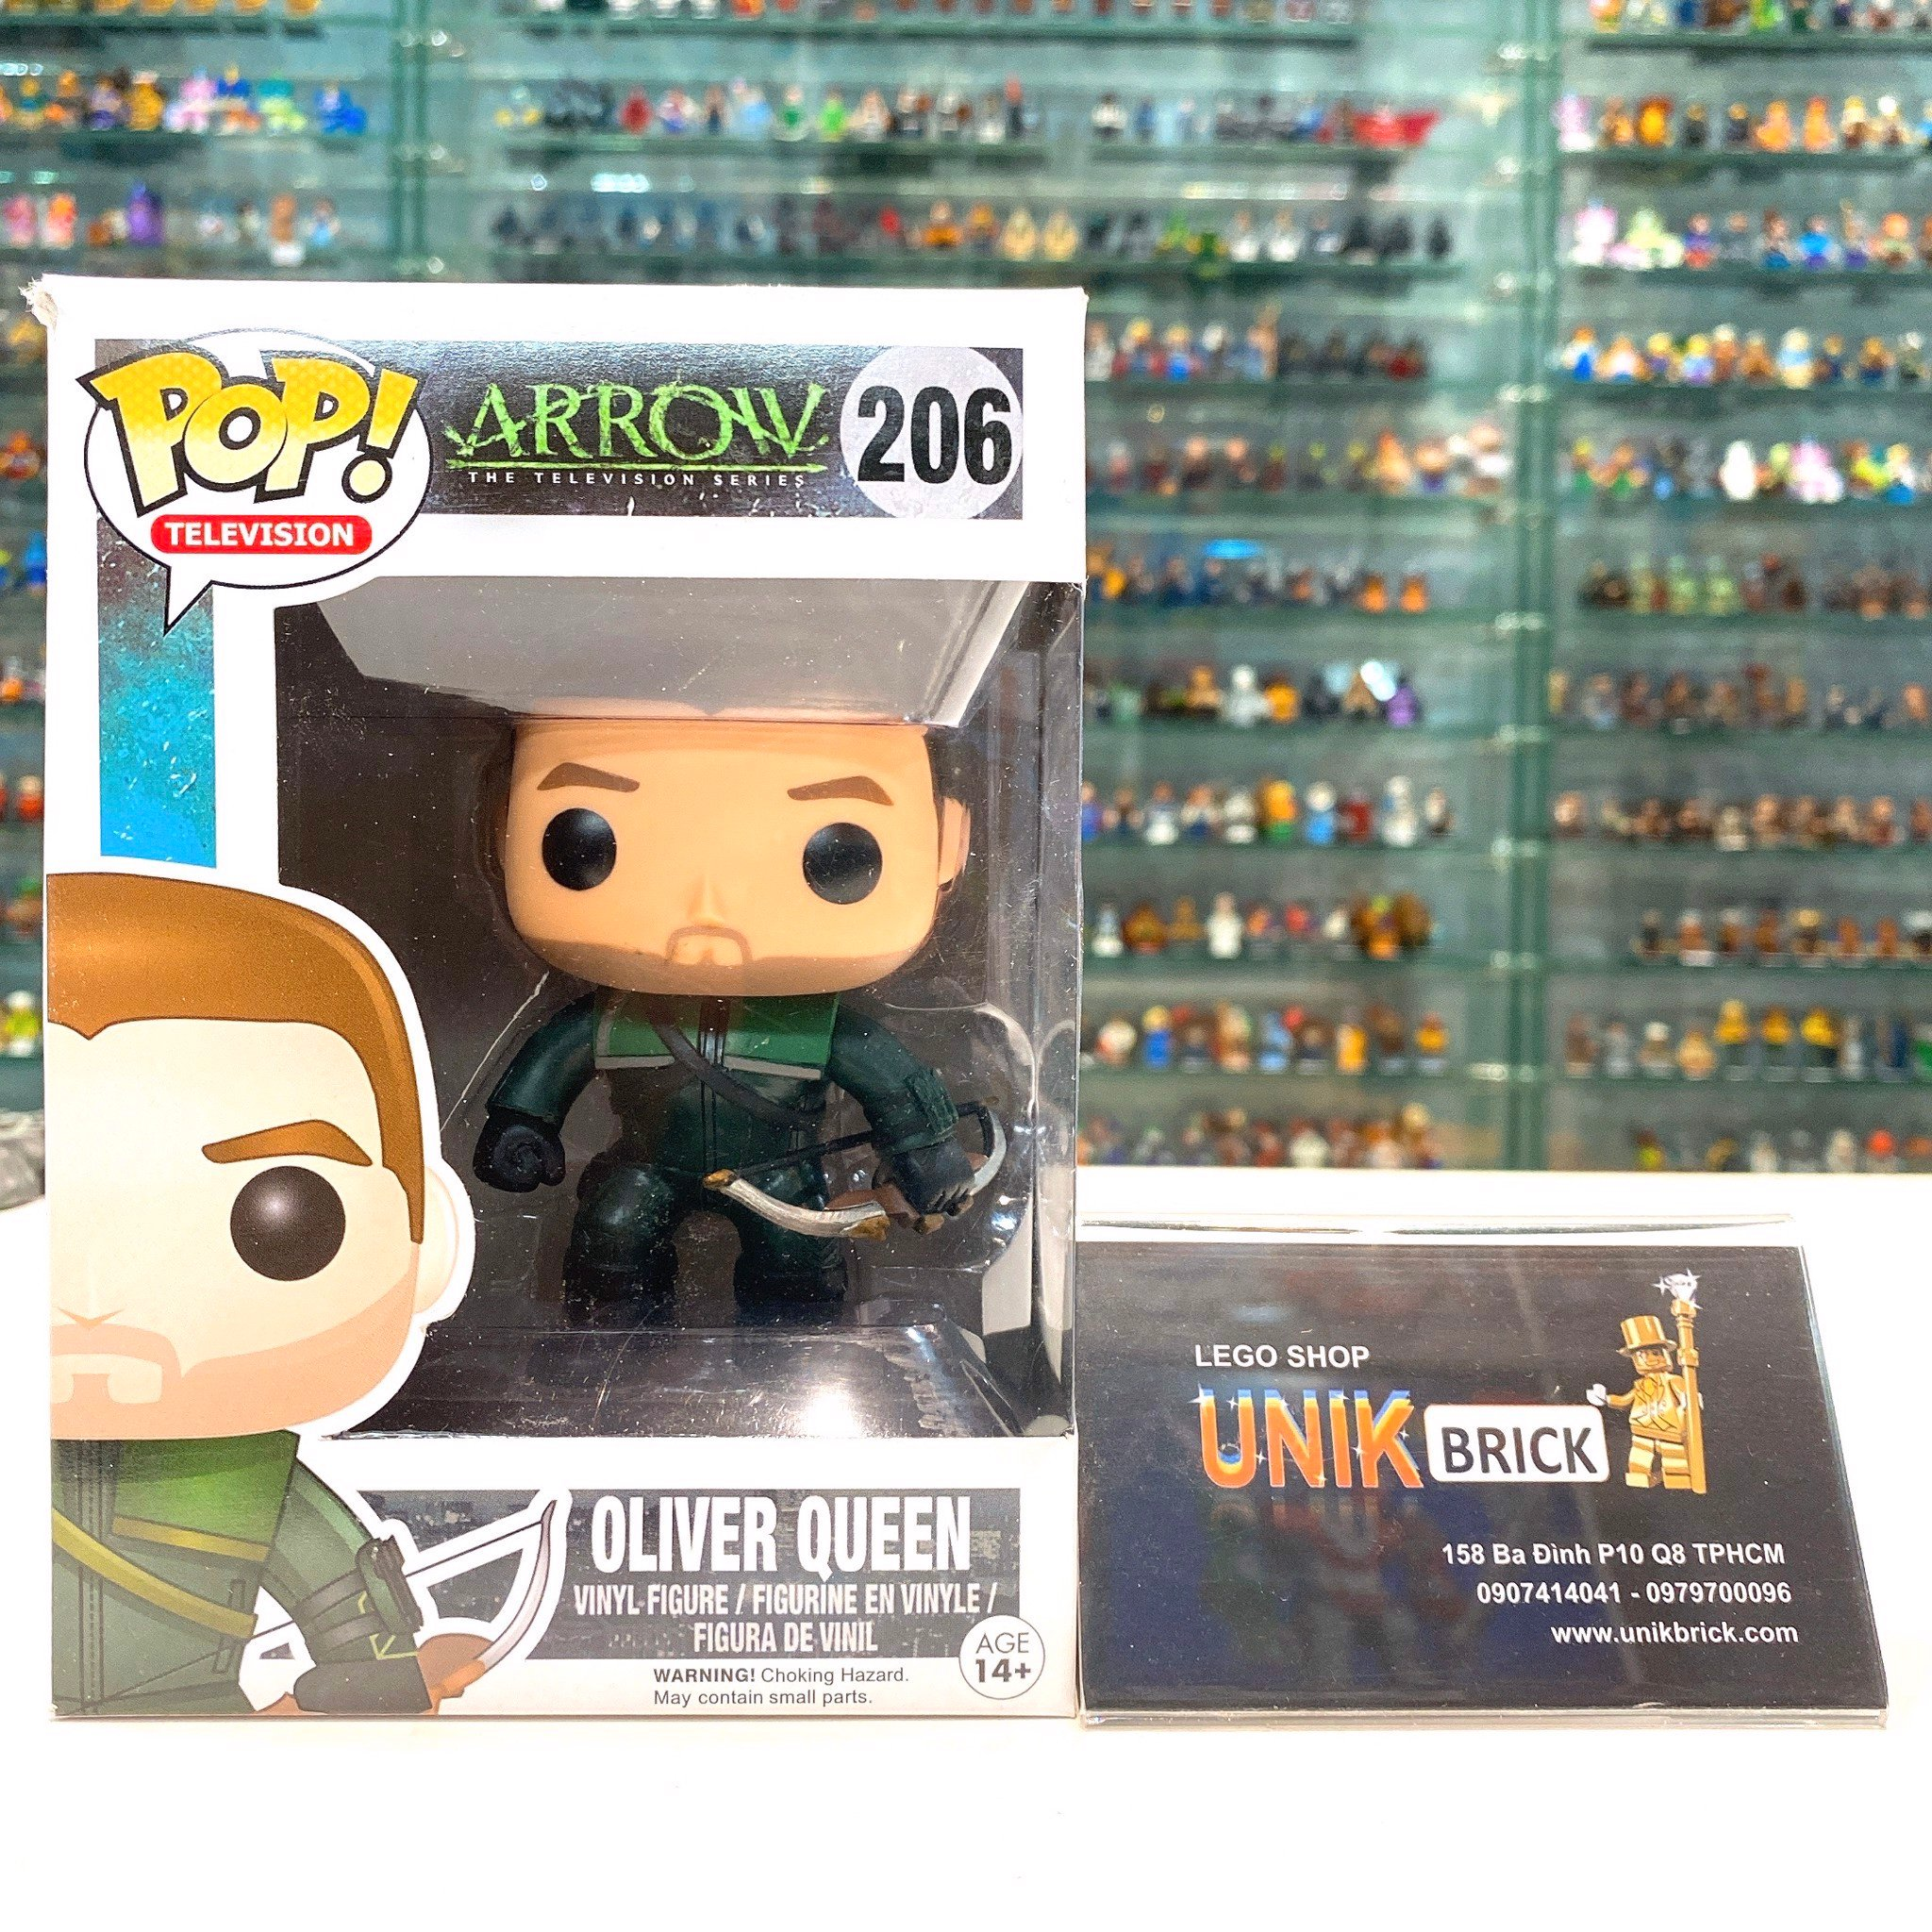 FUNKO POP Arrow 206 Oliver Queen